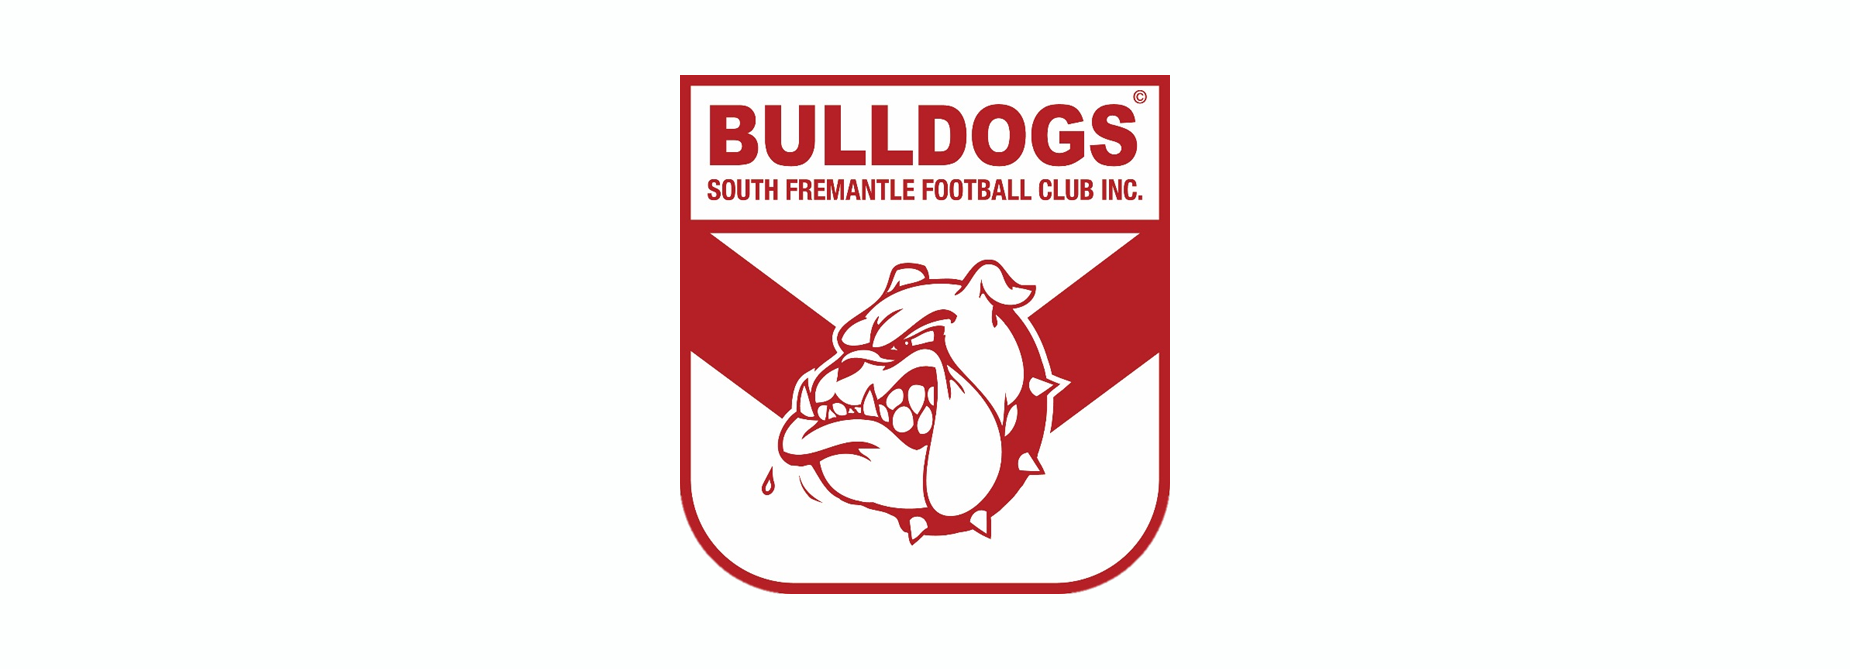 South Fremantle Football Club Logo